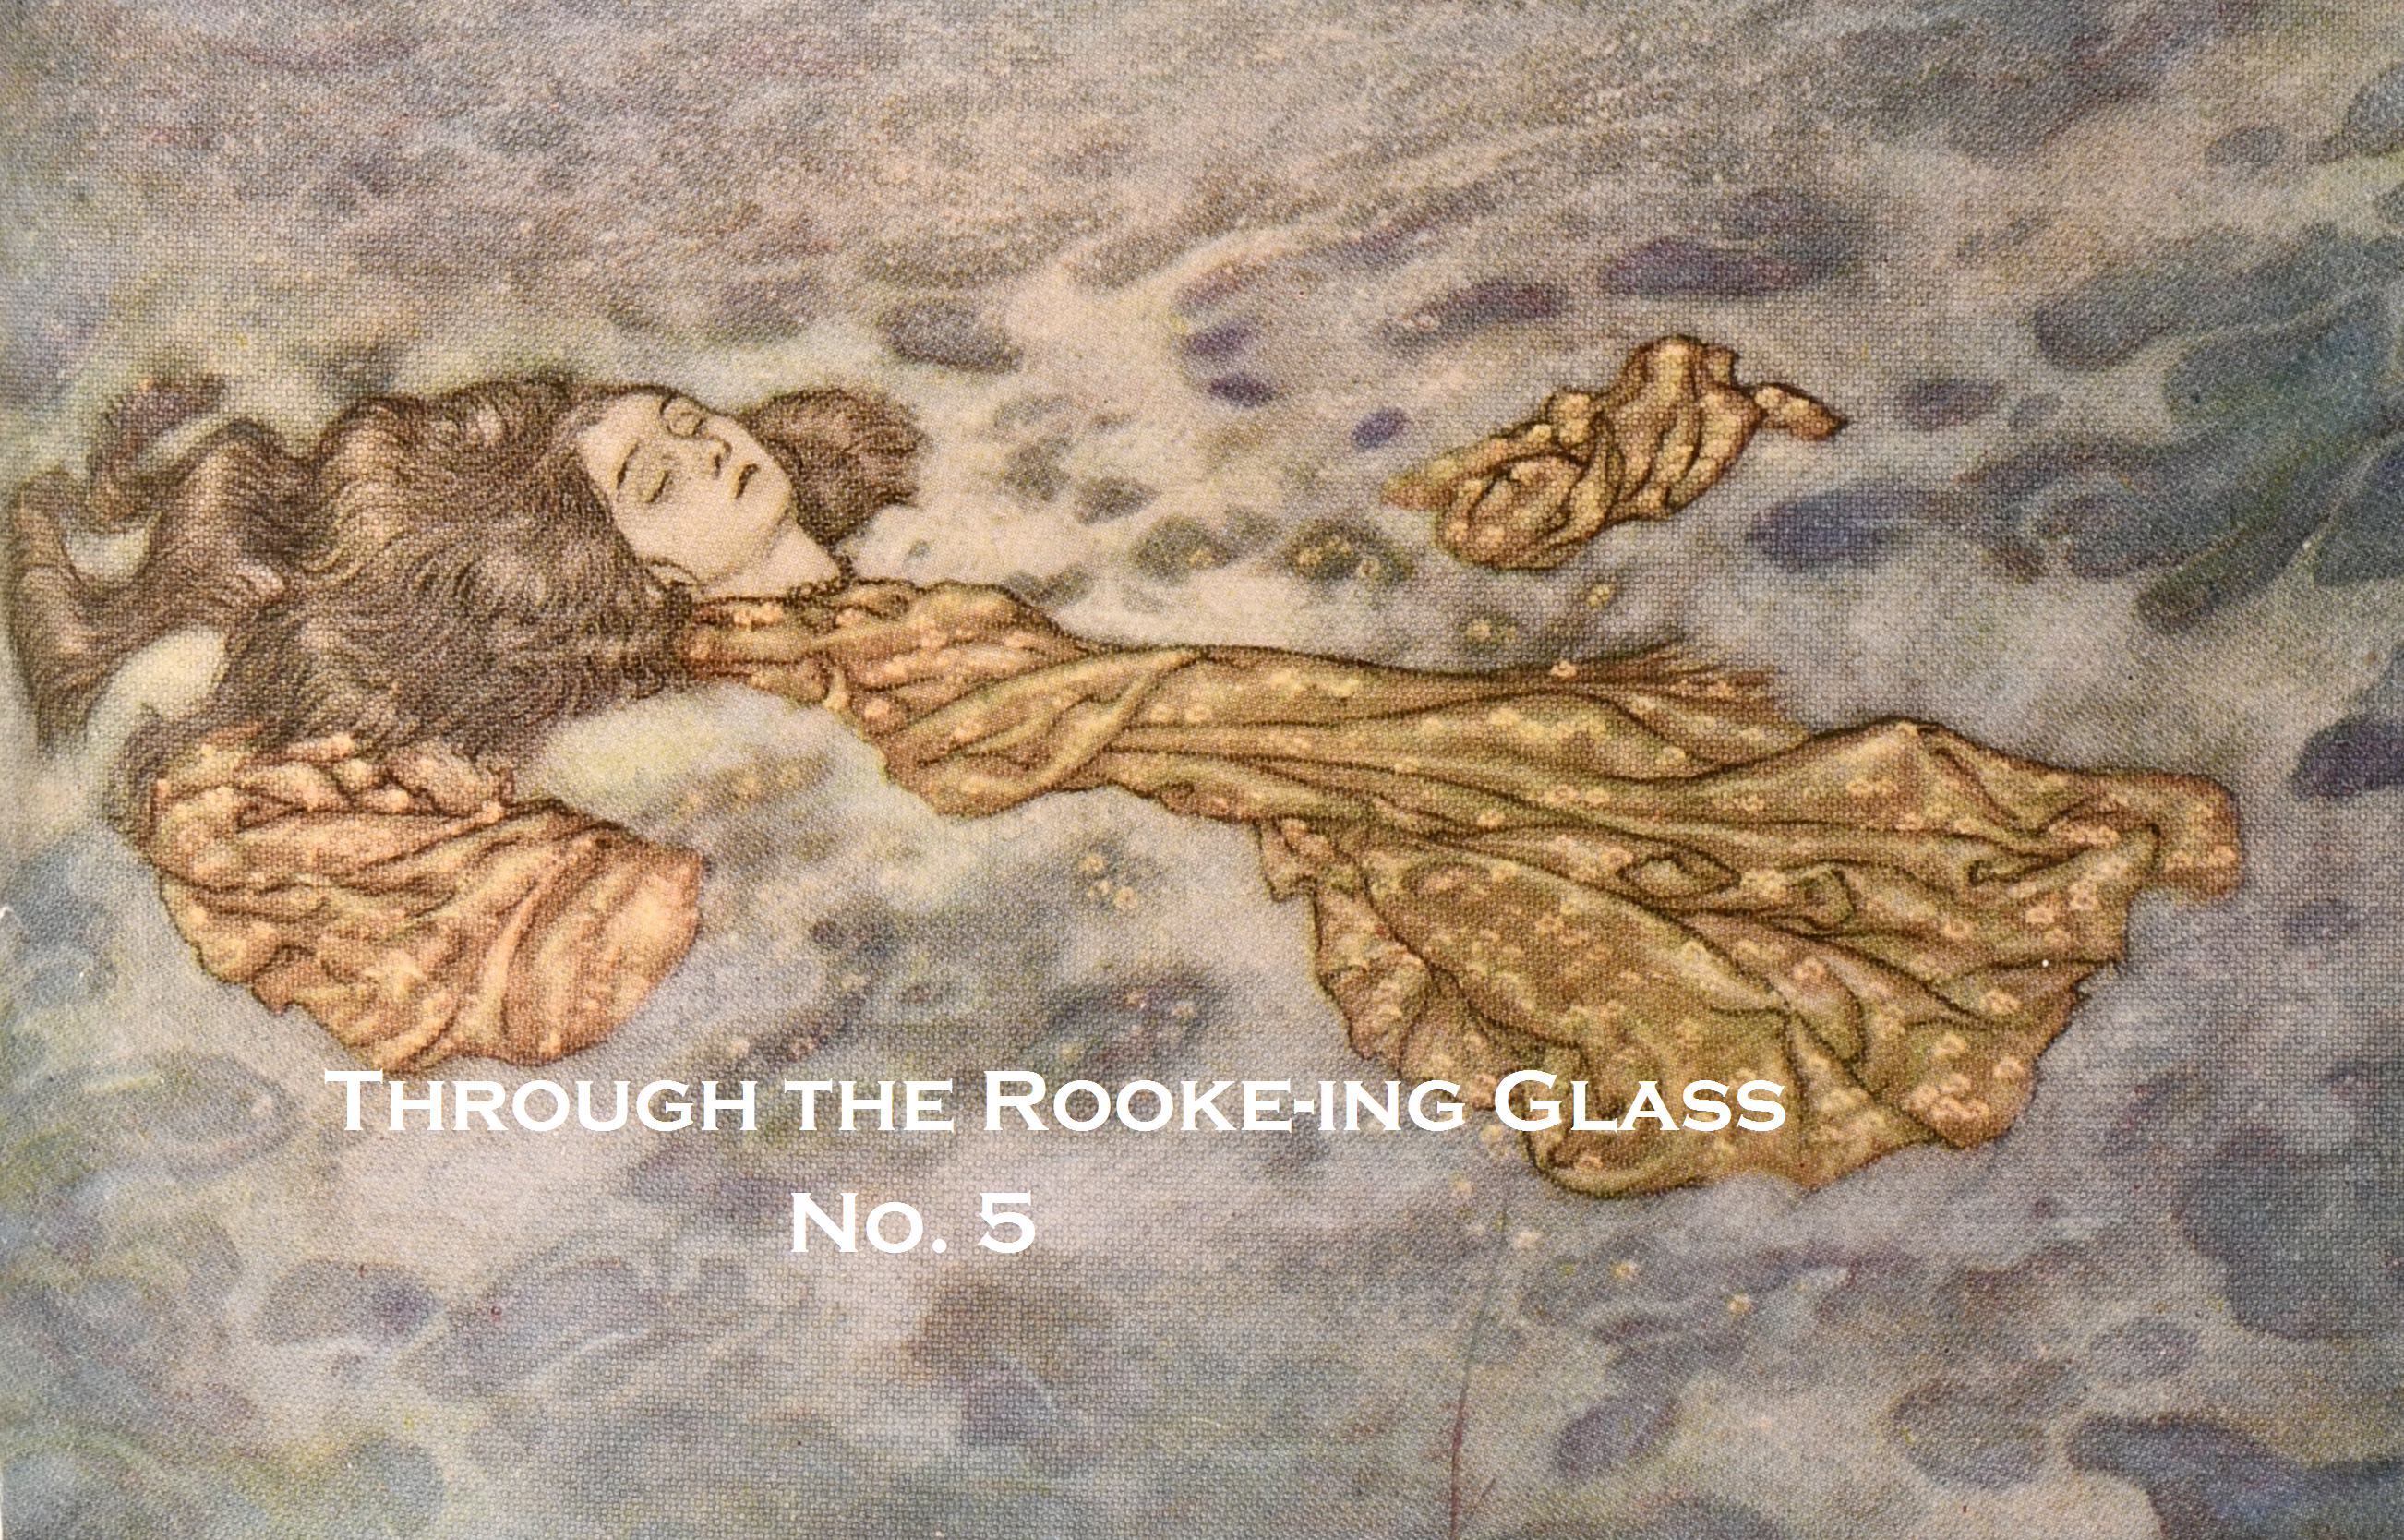 Through the Rooke-ing Glass No. 5: Domestic Divergence